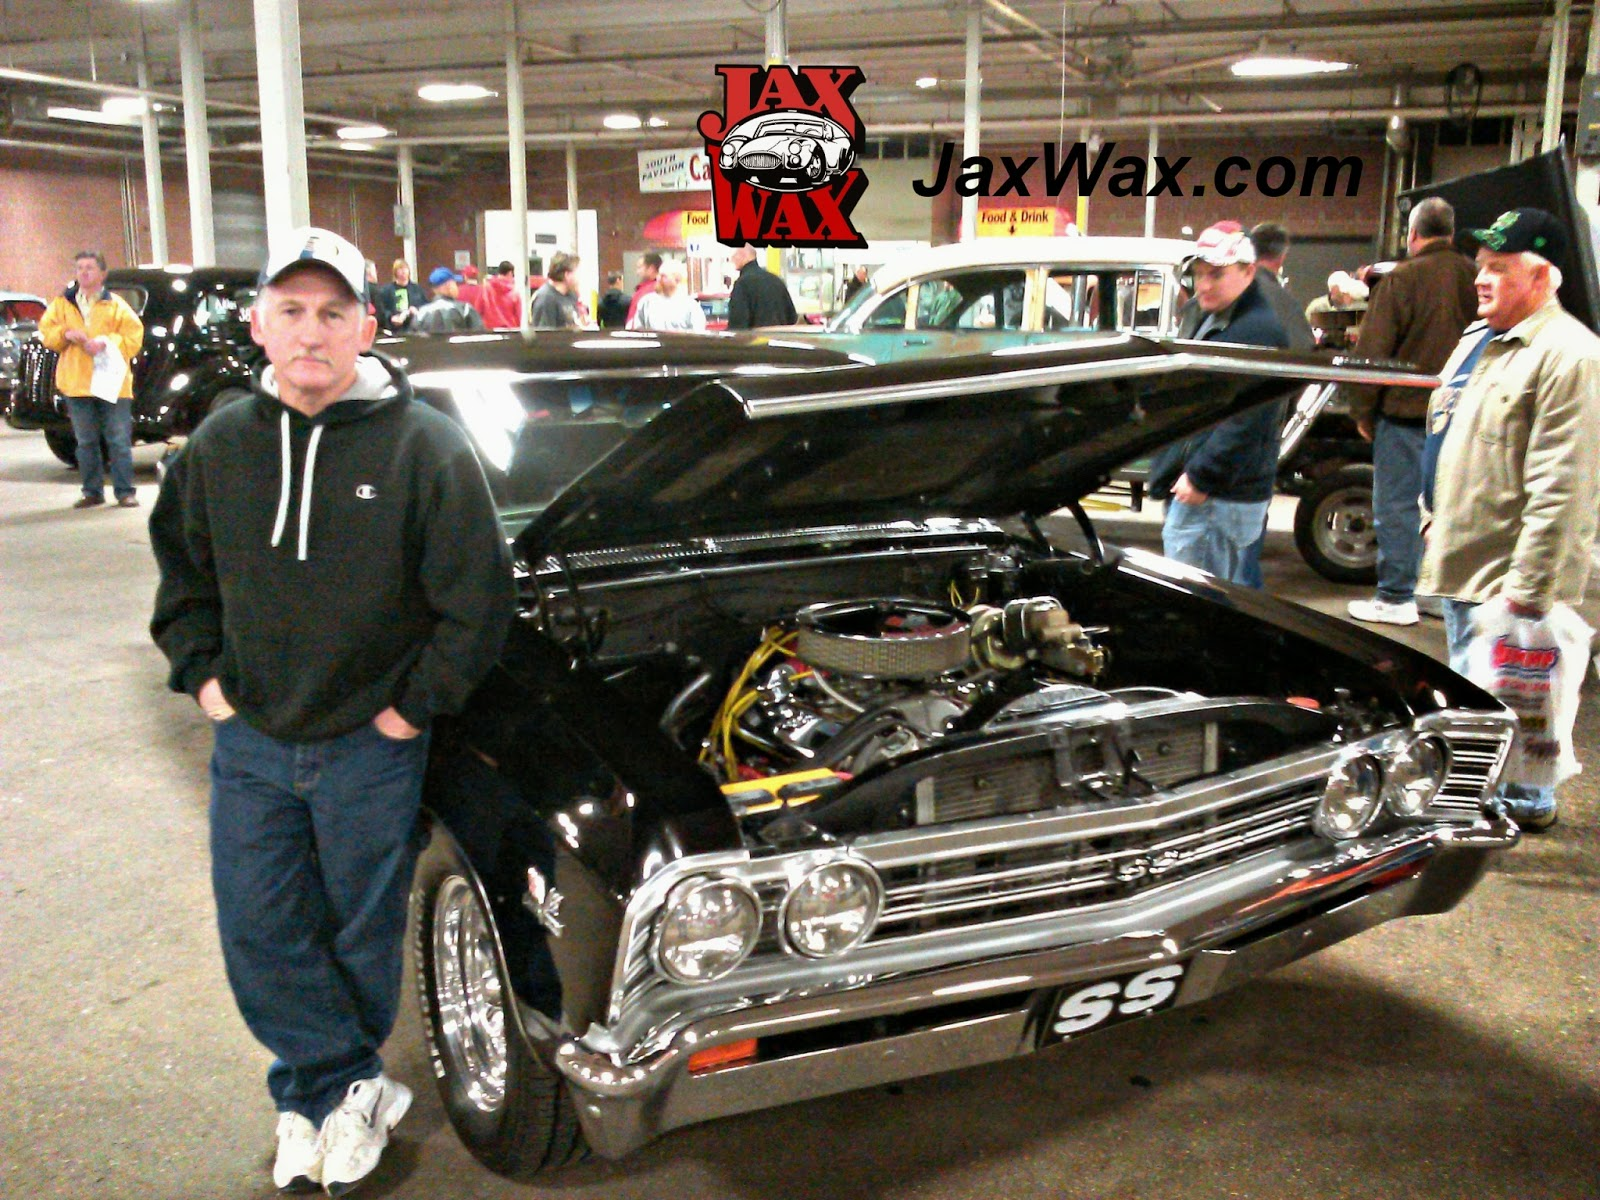 1967 Chevelle SS Indianapolis World of Wheels Jax Wax Customer